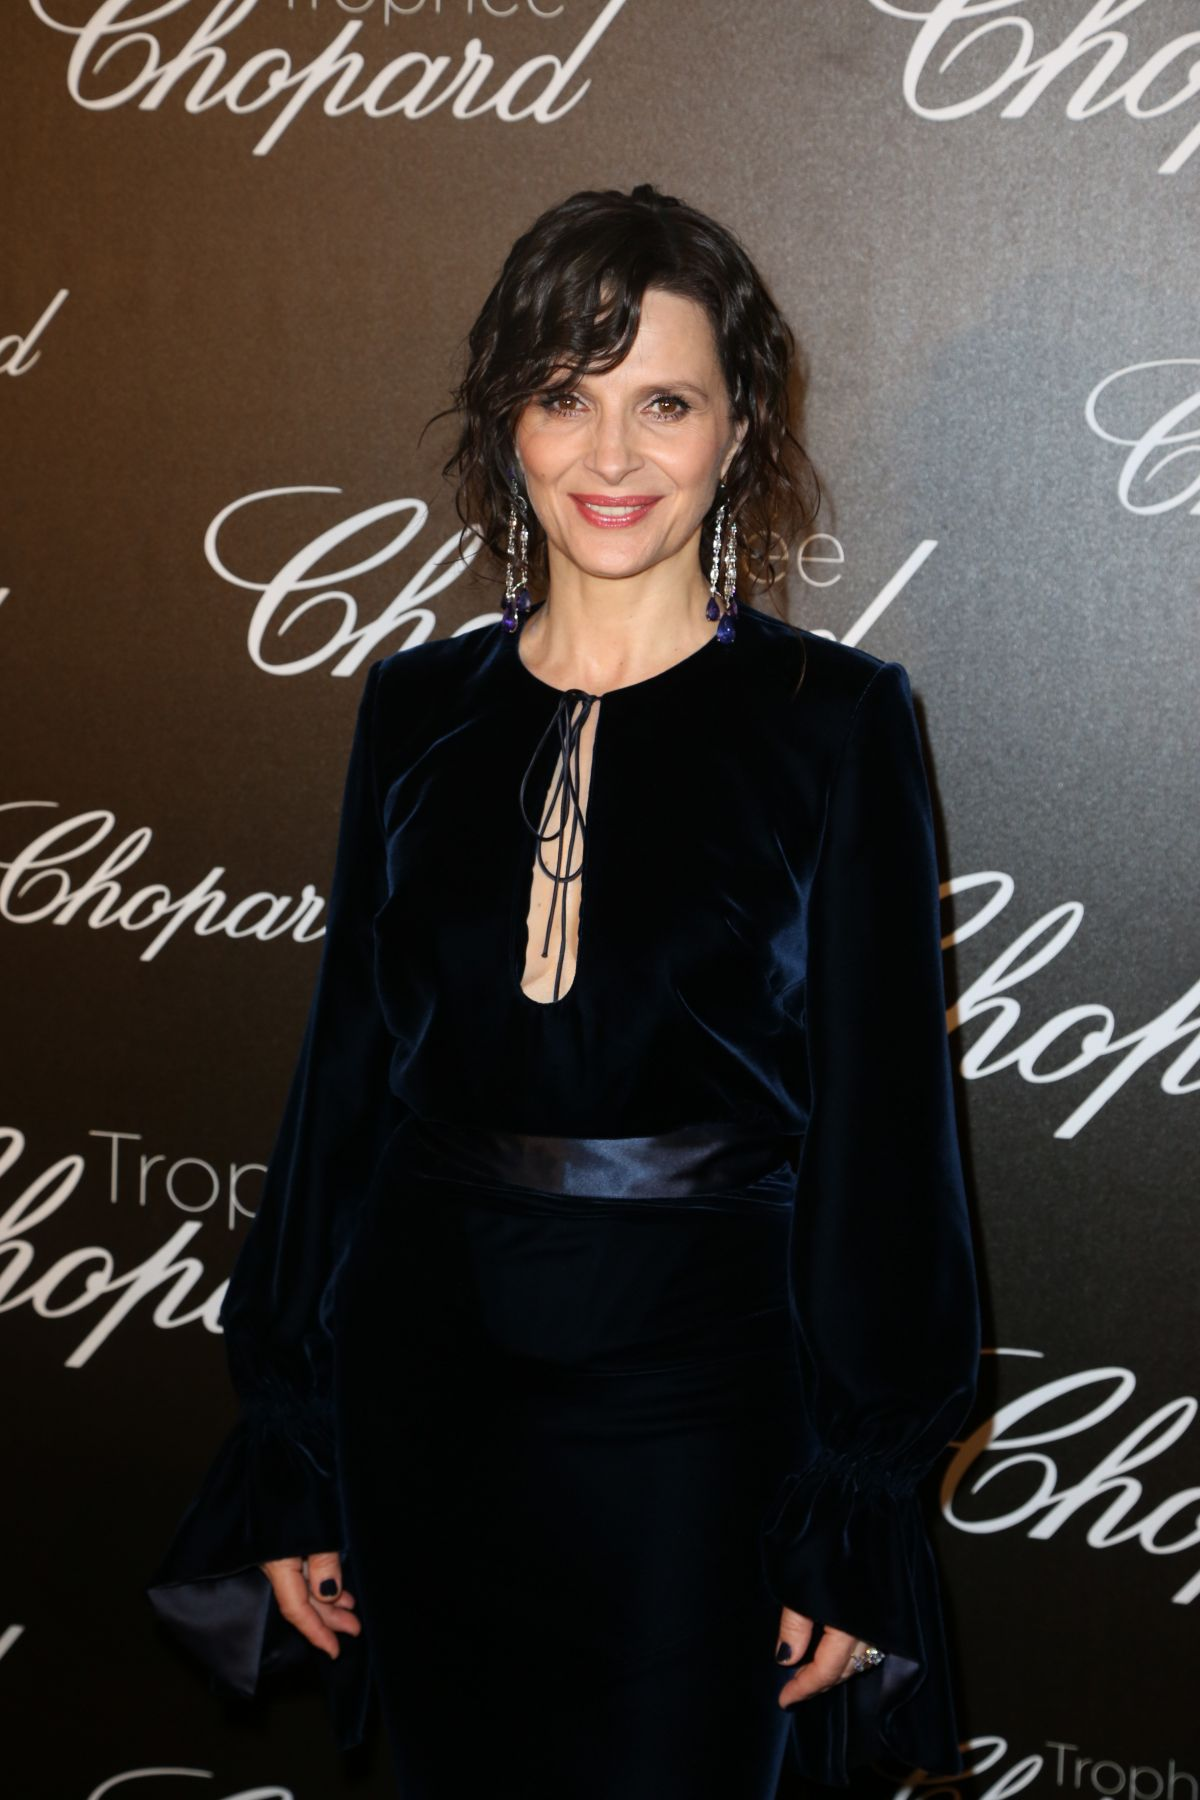 JULIETTE BINOCHE at Chopard Trophy Event in Cannes 05/22/2017